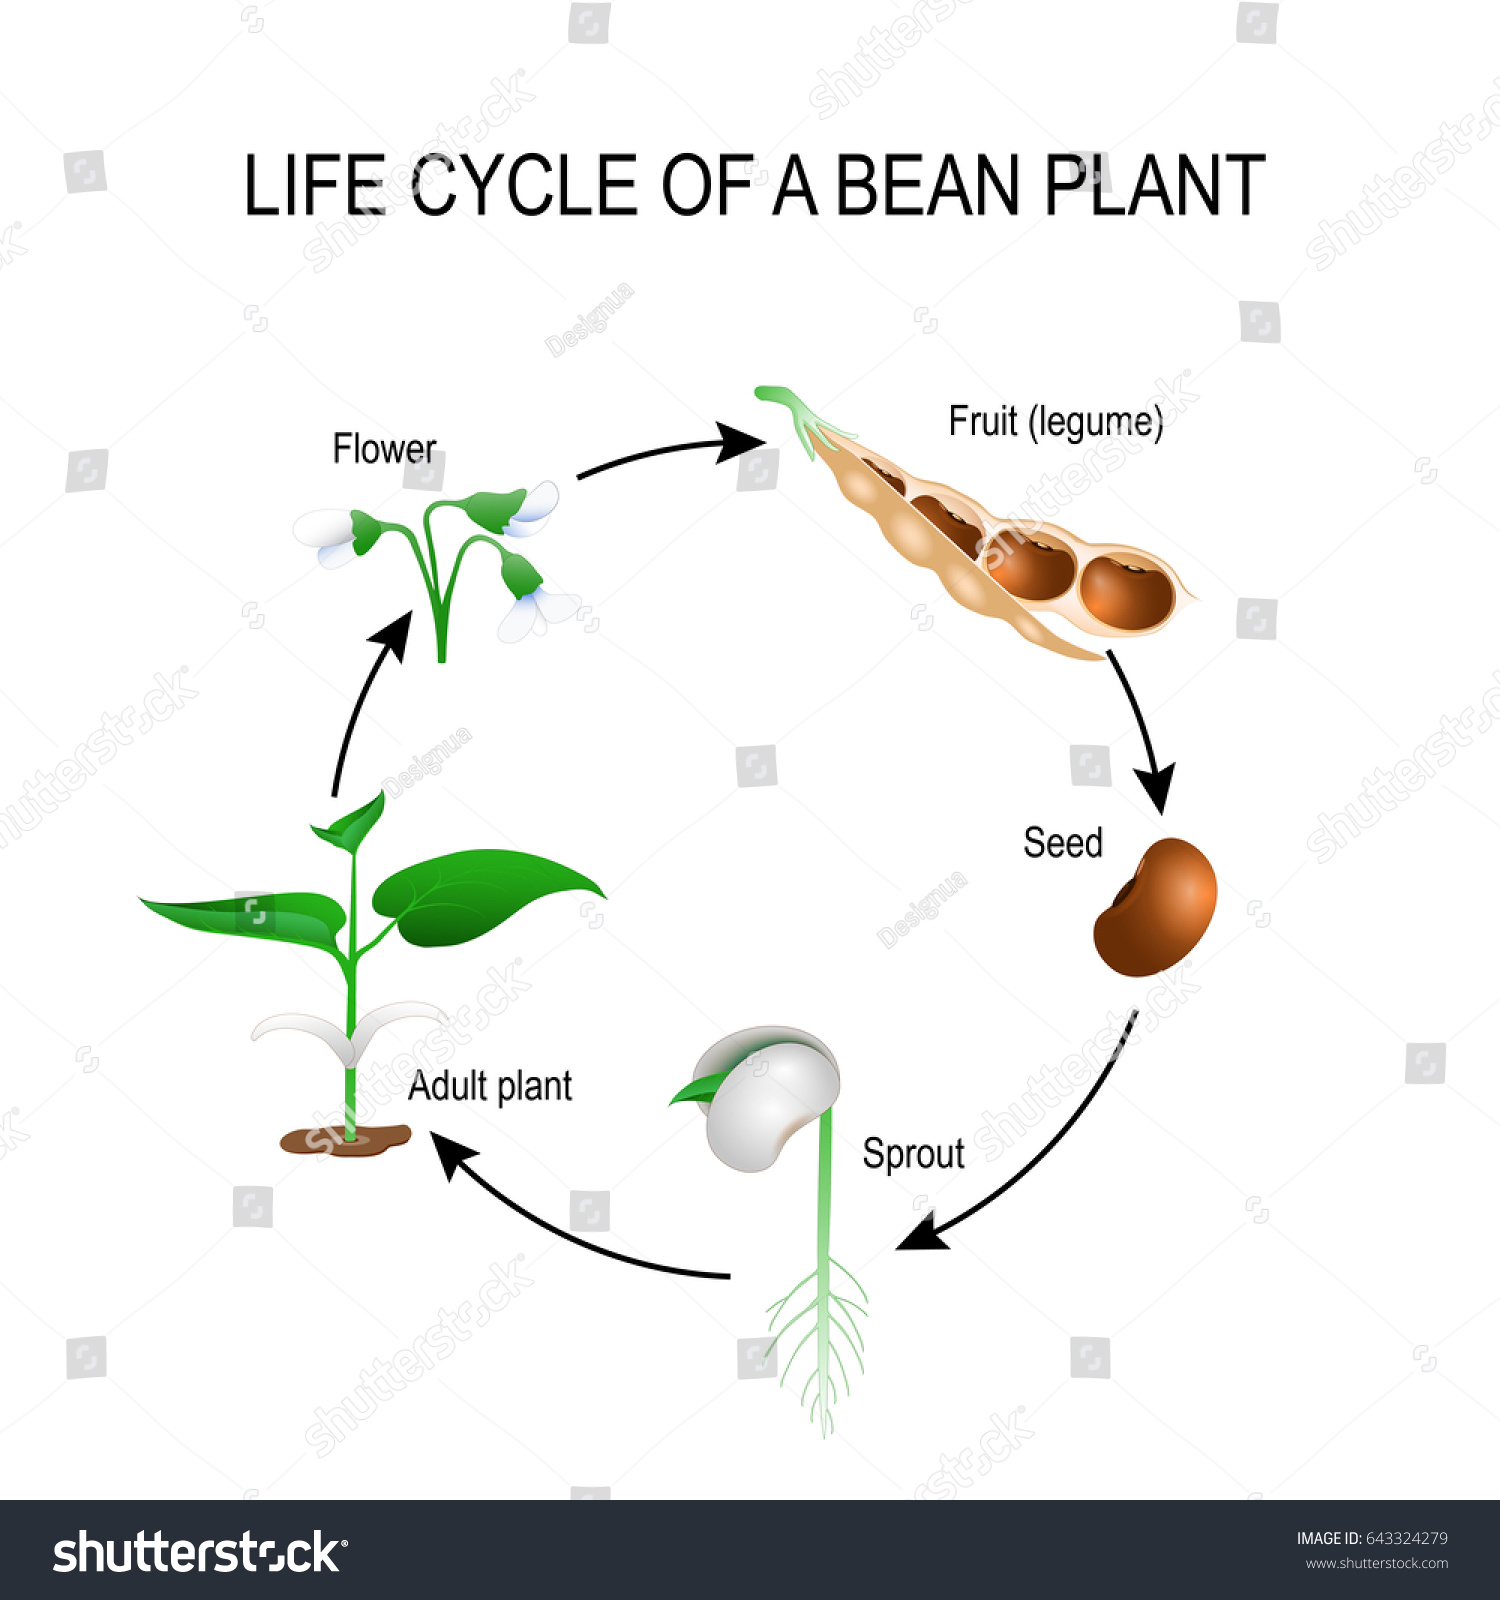 bean seedling diagram pro tach wiring royalty free stock illustration of life cycle plant stages a growing seed the most common example from to adult development